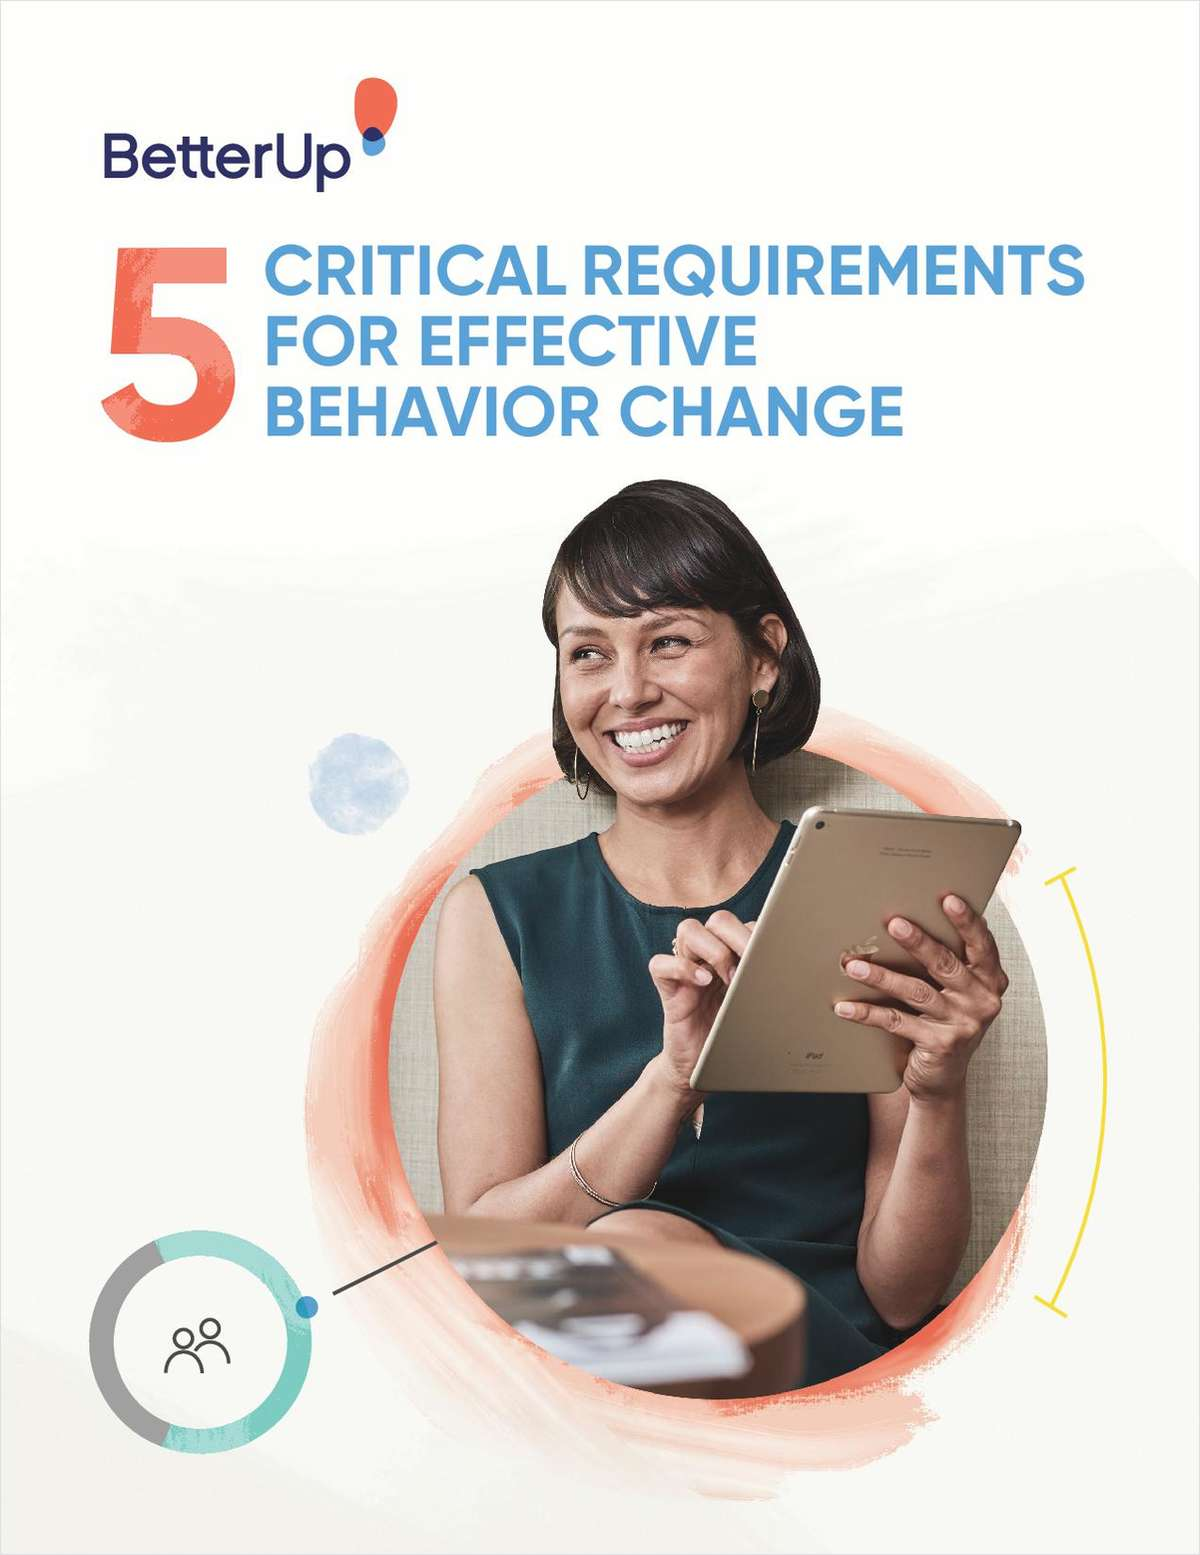 Five Critical Requirements for Effective Behavior Change